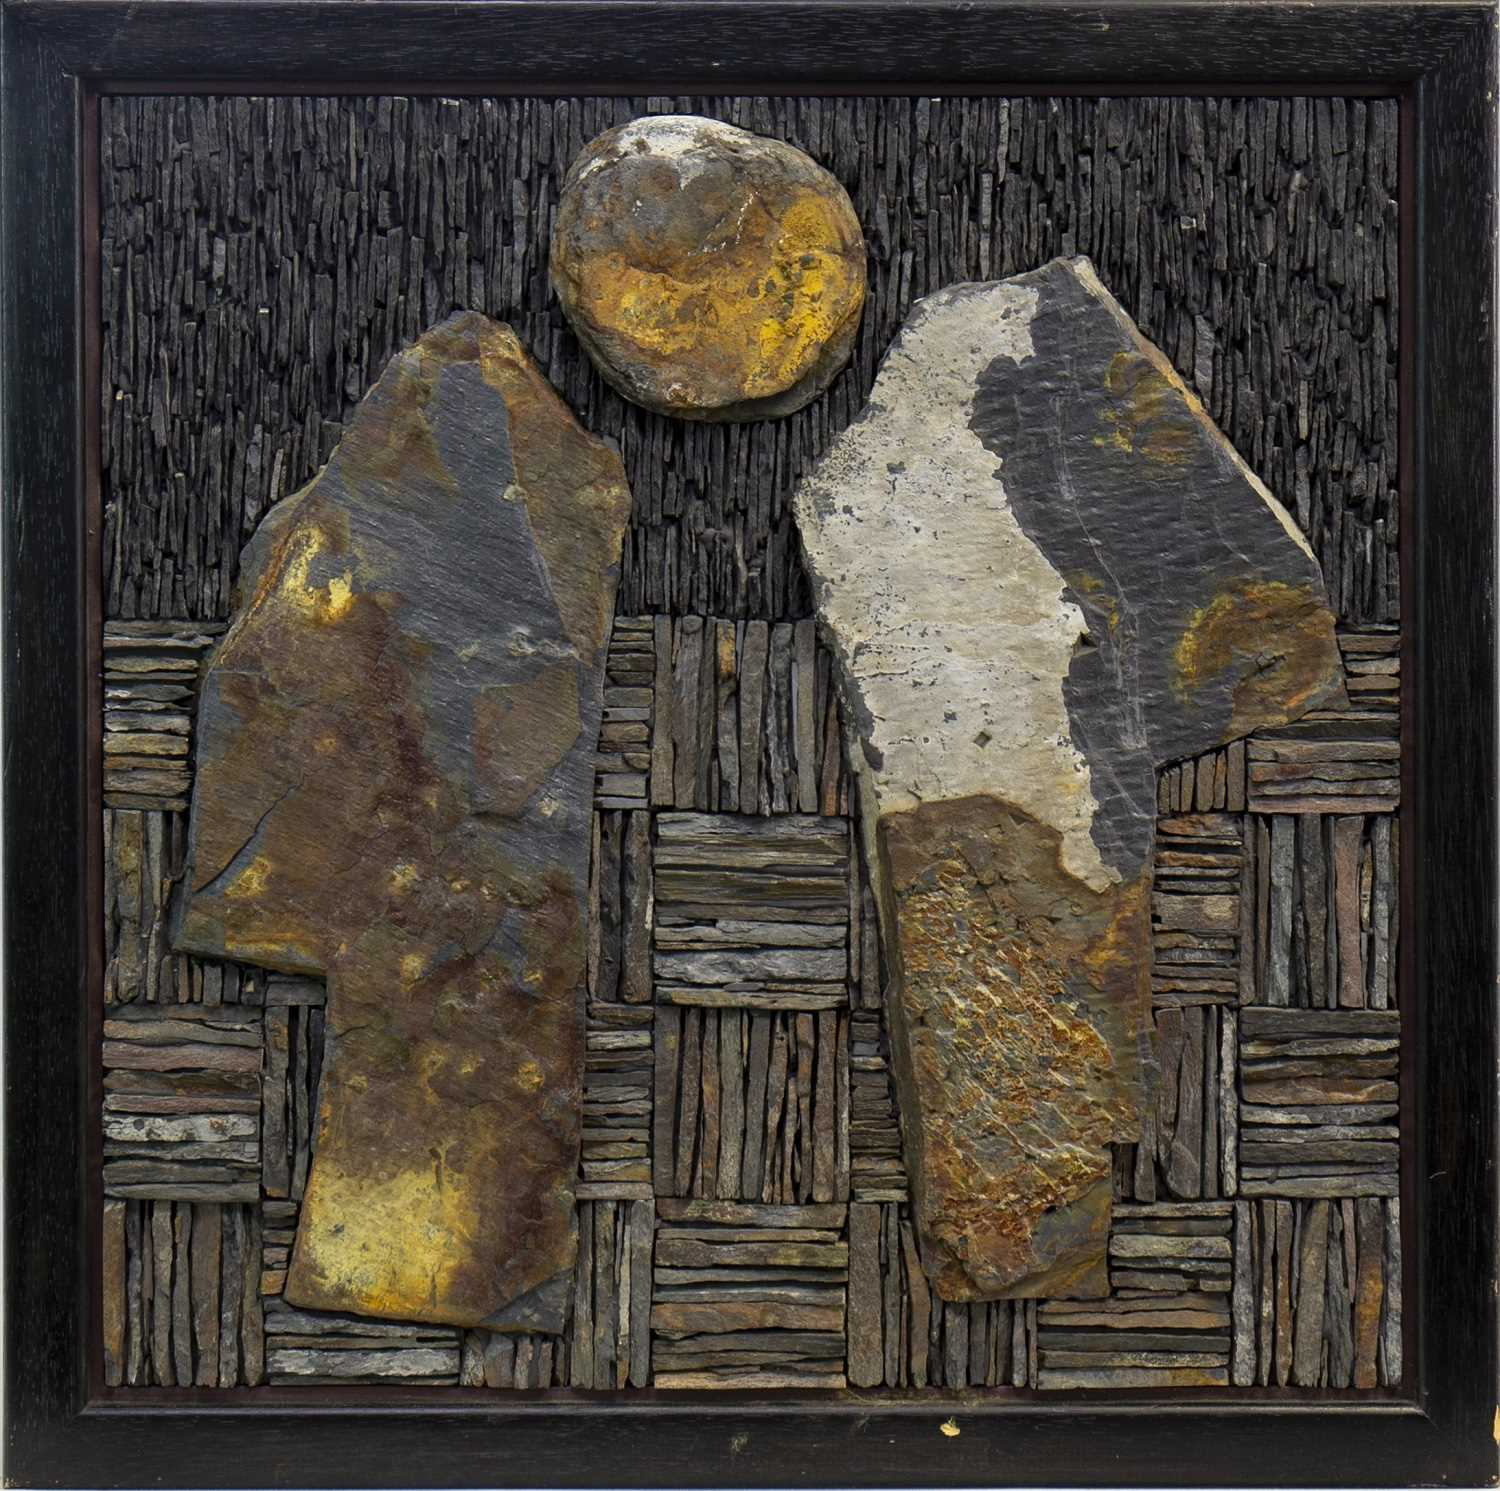 Lot 510-VENUS REGARDED, A SCOTTISH SLATE MOSAIC BY DUGALD MACINNES